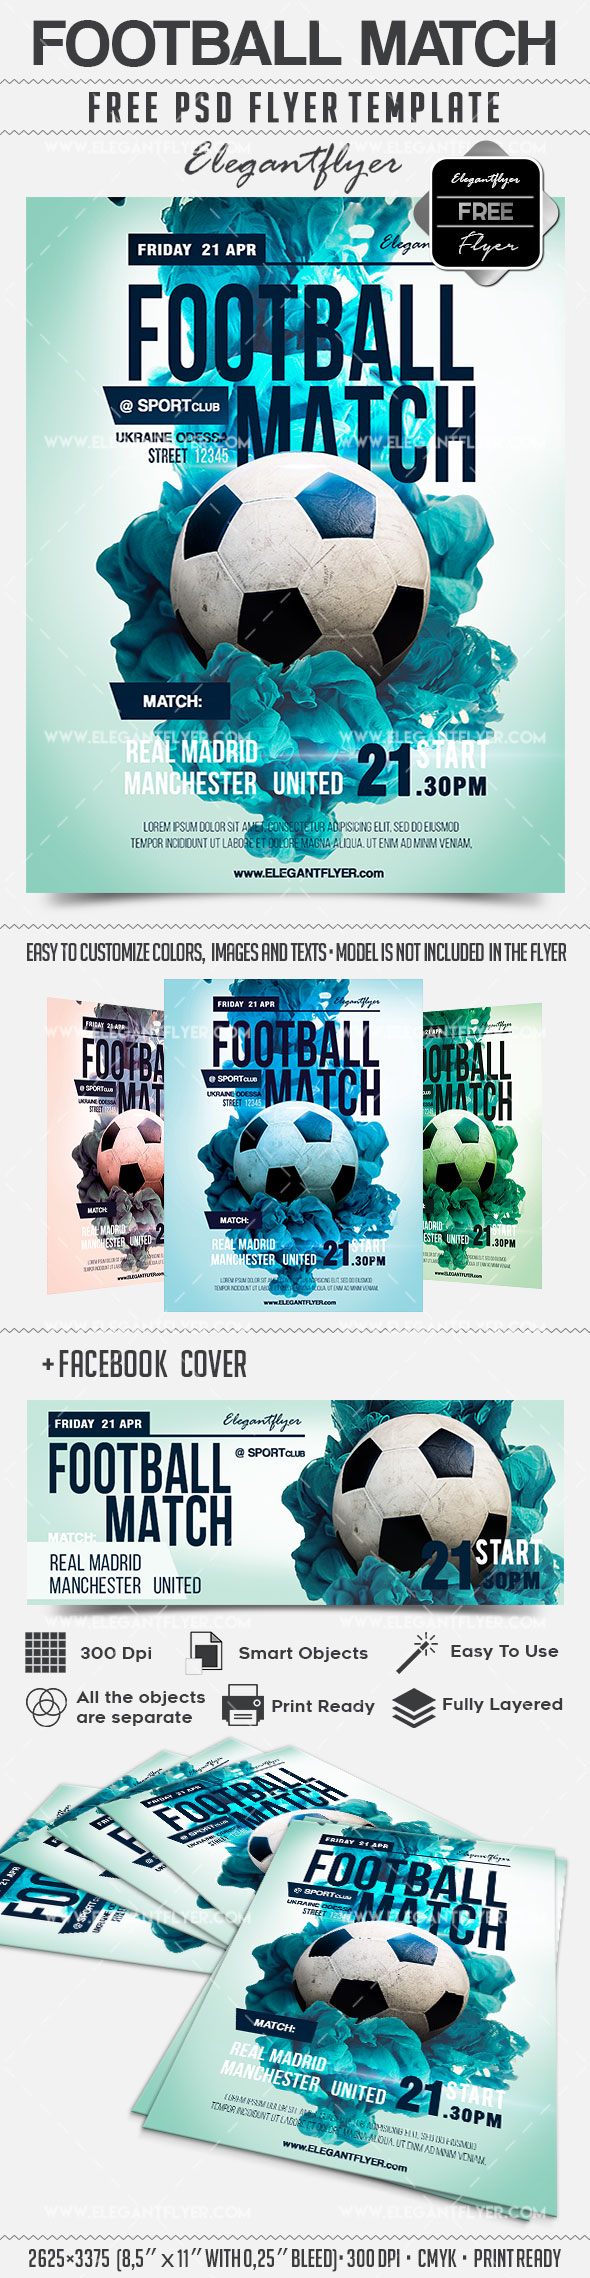 football match flyer in psd by elegantflyer. Black Bedroom Furniture Sets. Home Design Ideas